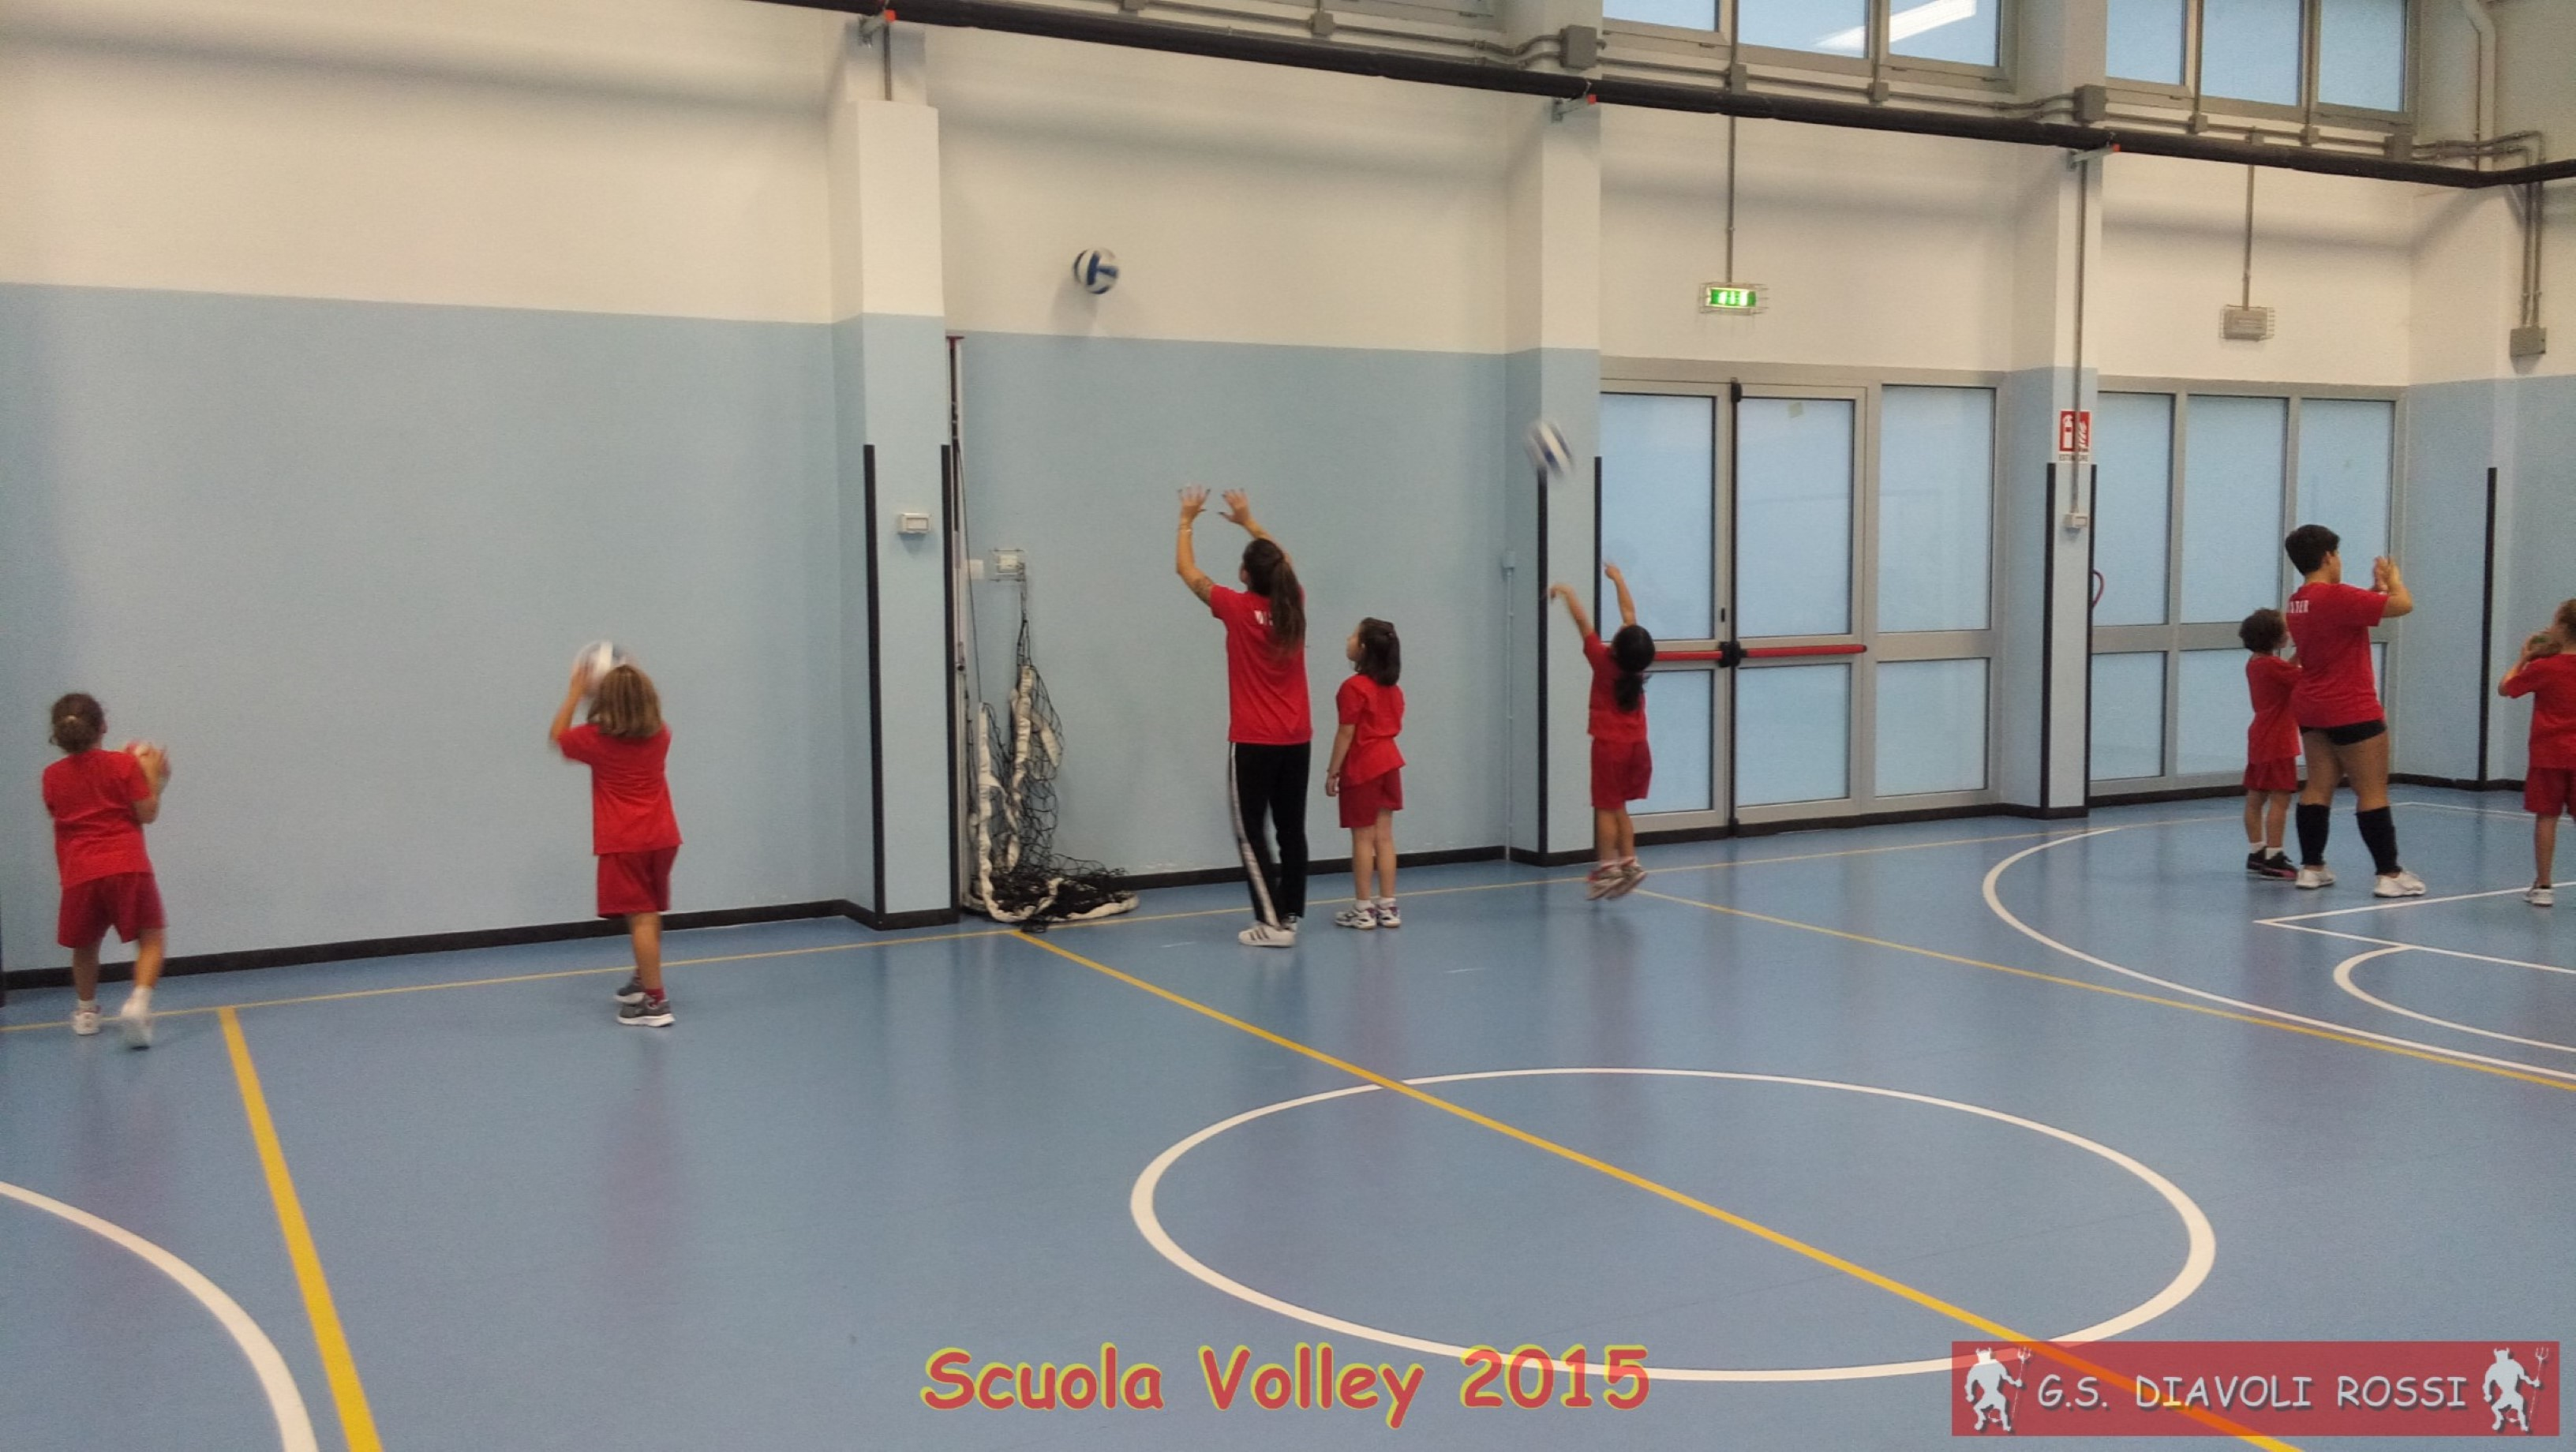 Scuola Volley-all 2